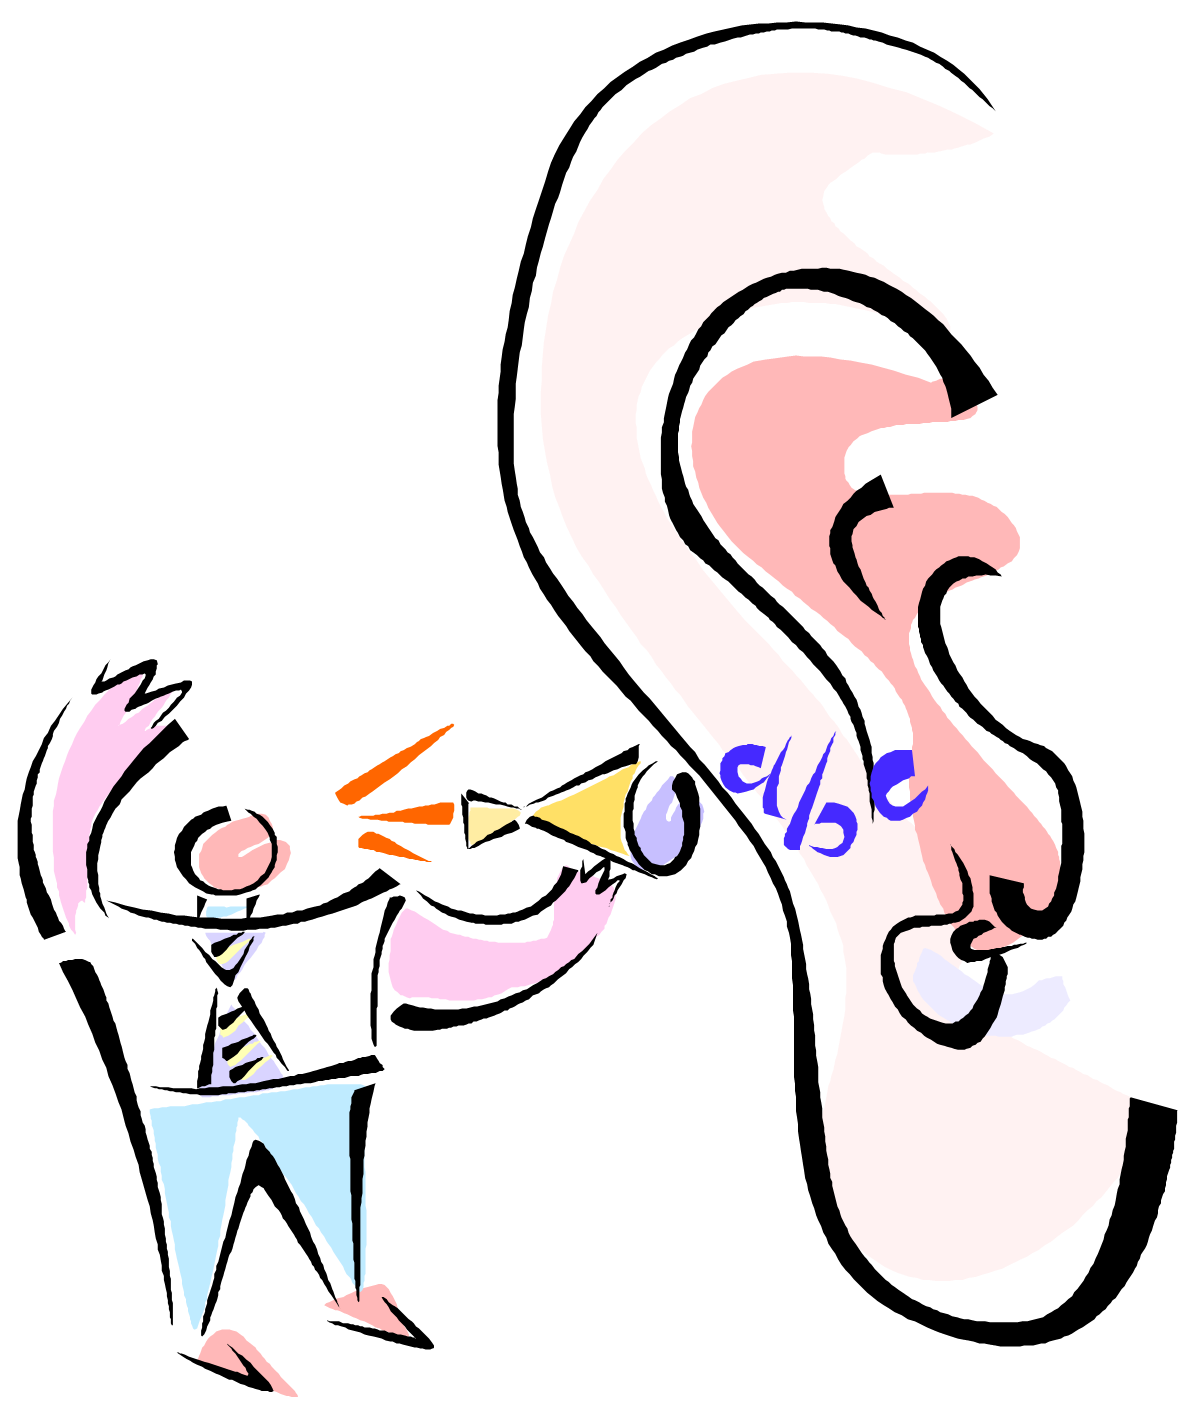 clip art library download Png images transparent free. Listening clipart listening ear.